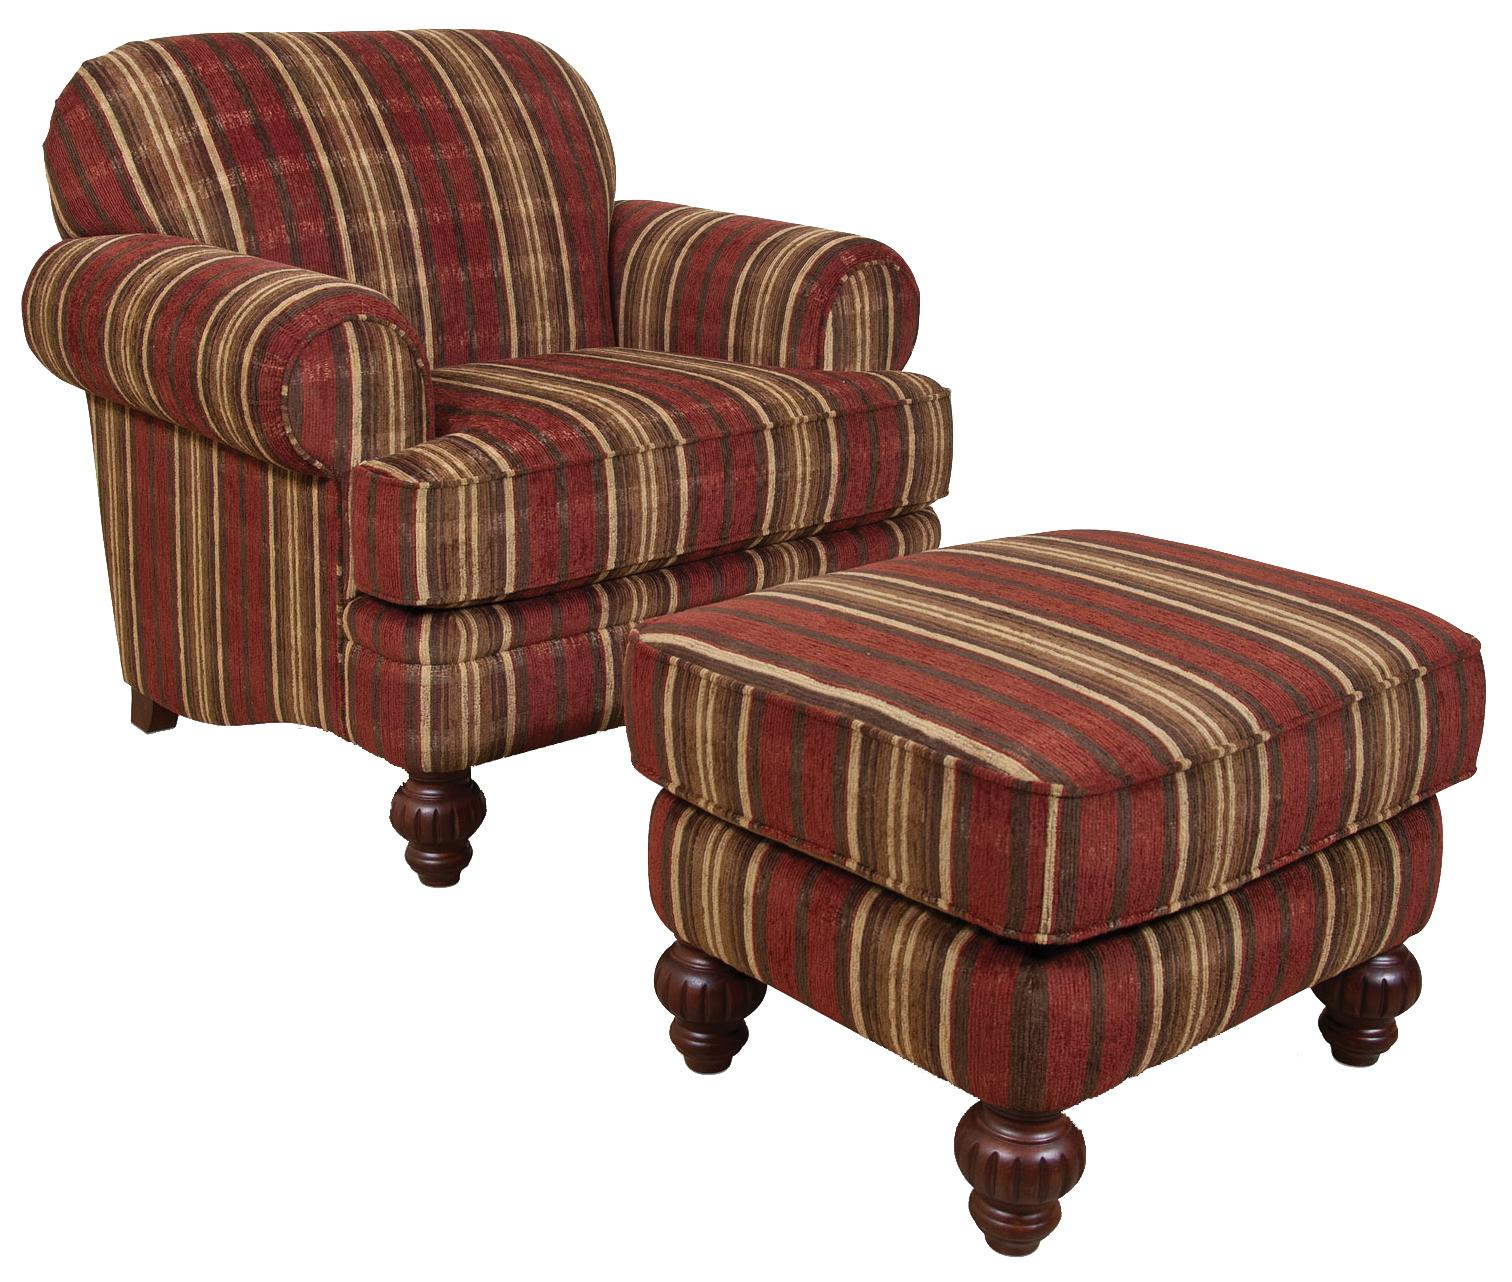 England Bill Chair and Ottoman Set - Item Number: 2544+7